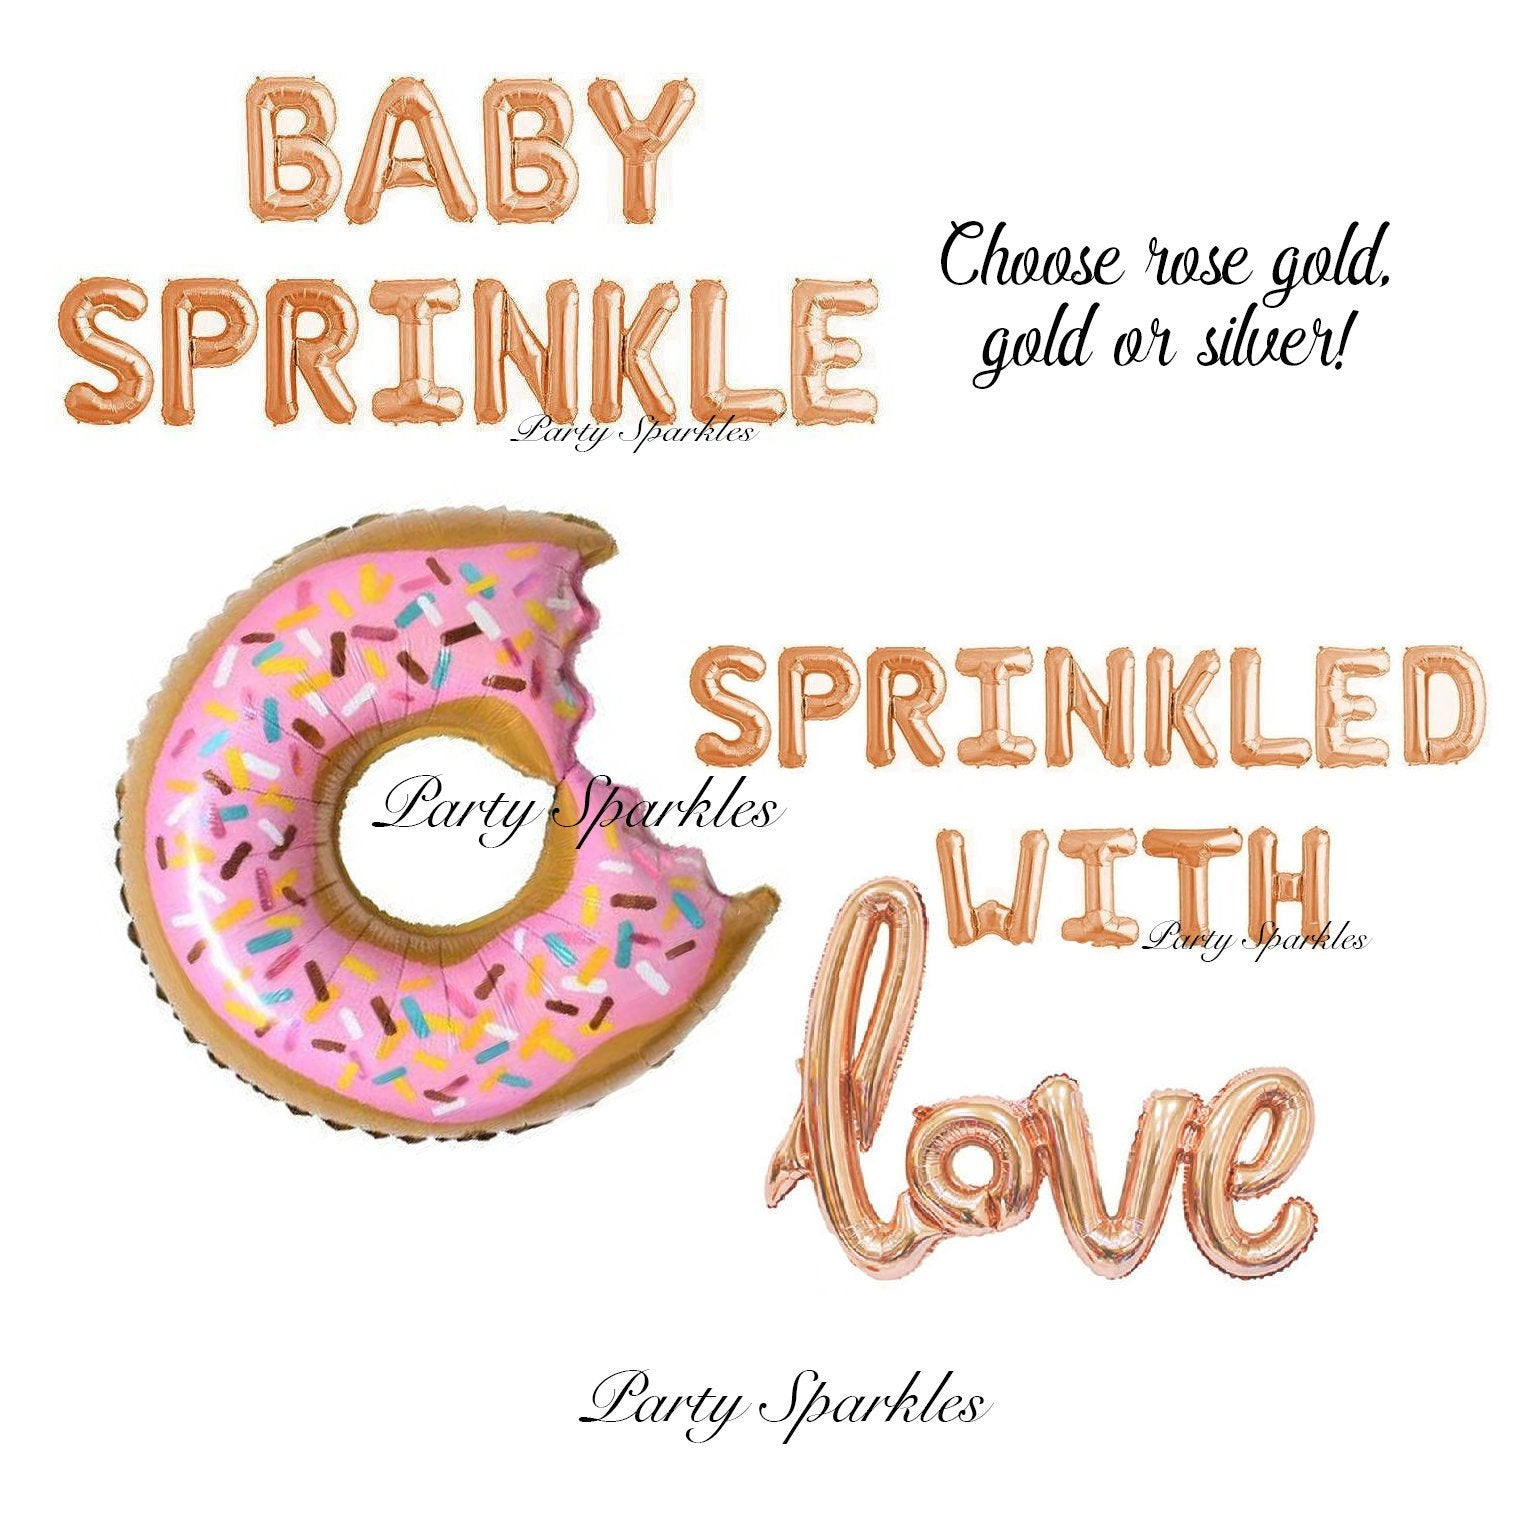 Sprinkle Party Balloon Decorations, Baby Sprinkle, Sprinkled with Love